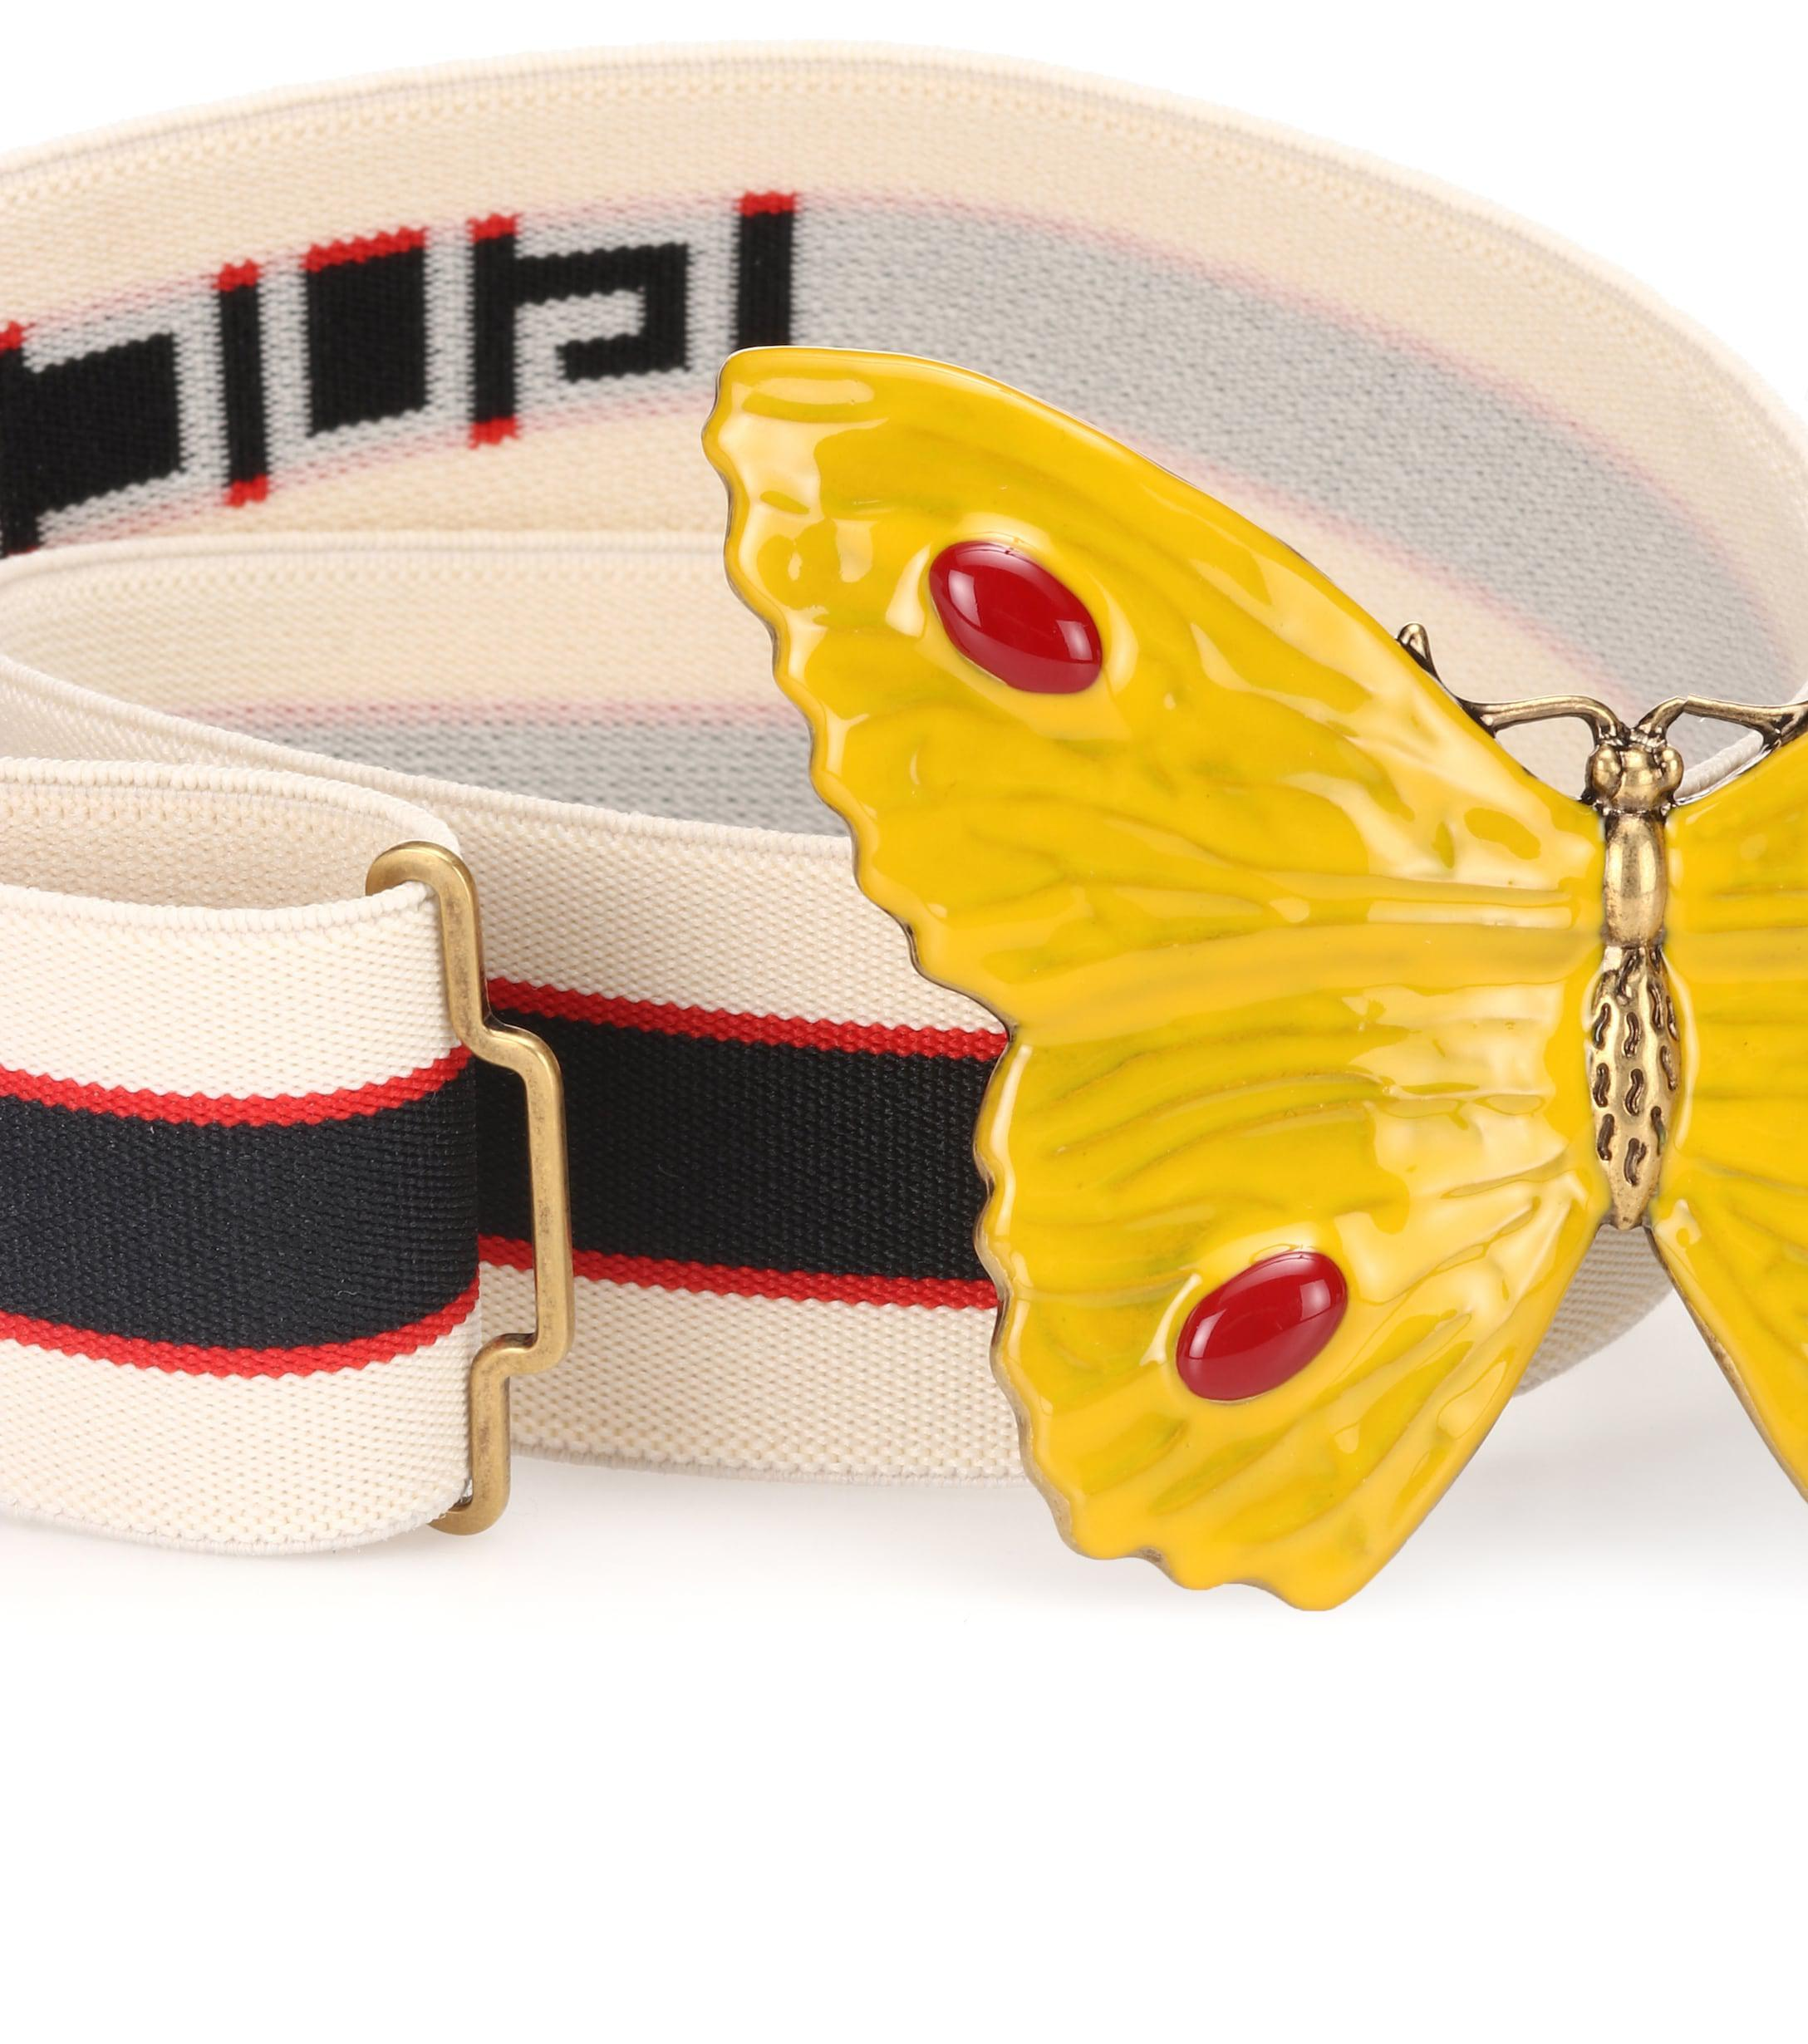 8f10276566a8 Gucci Butterfly Striped Belt in Yellow - Lyst